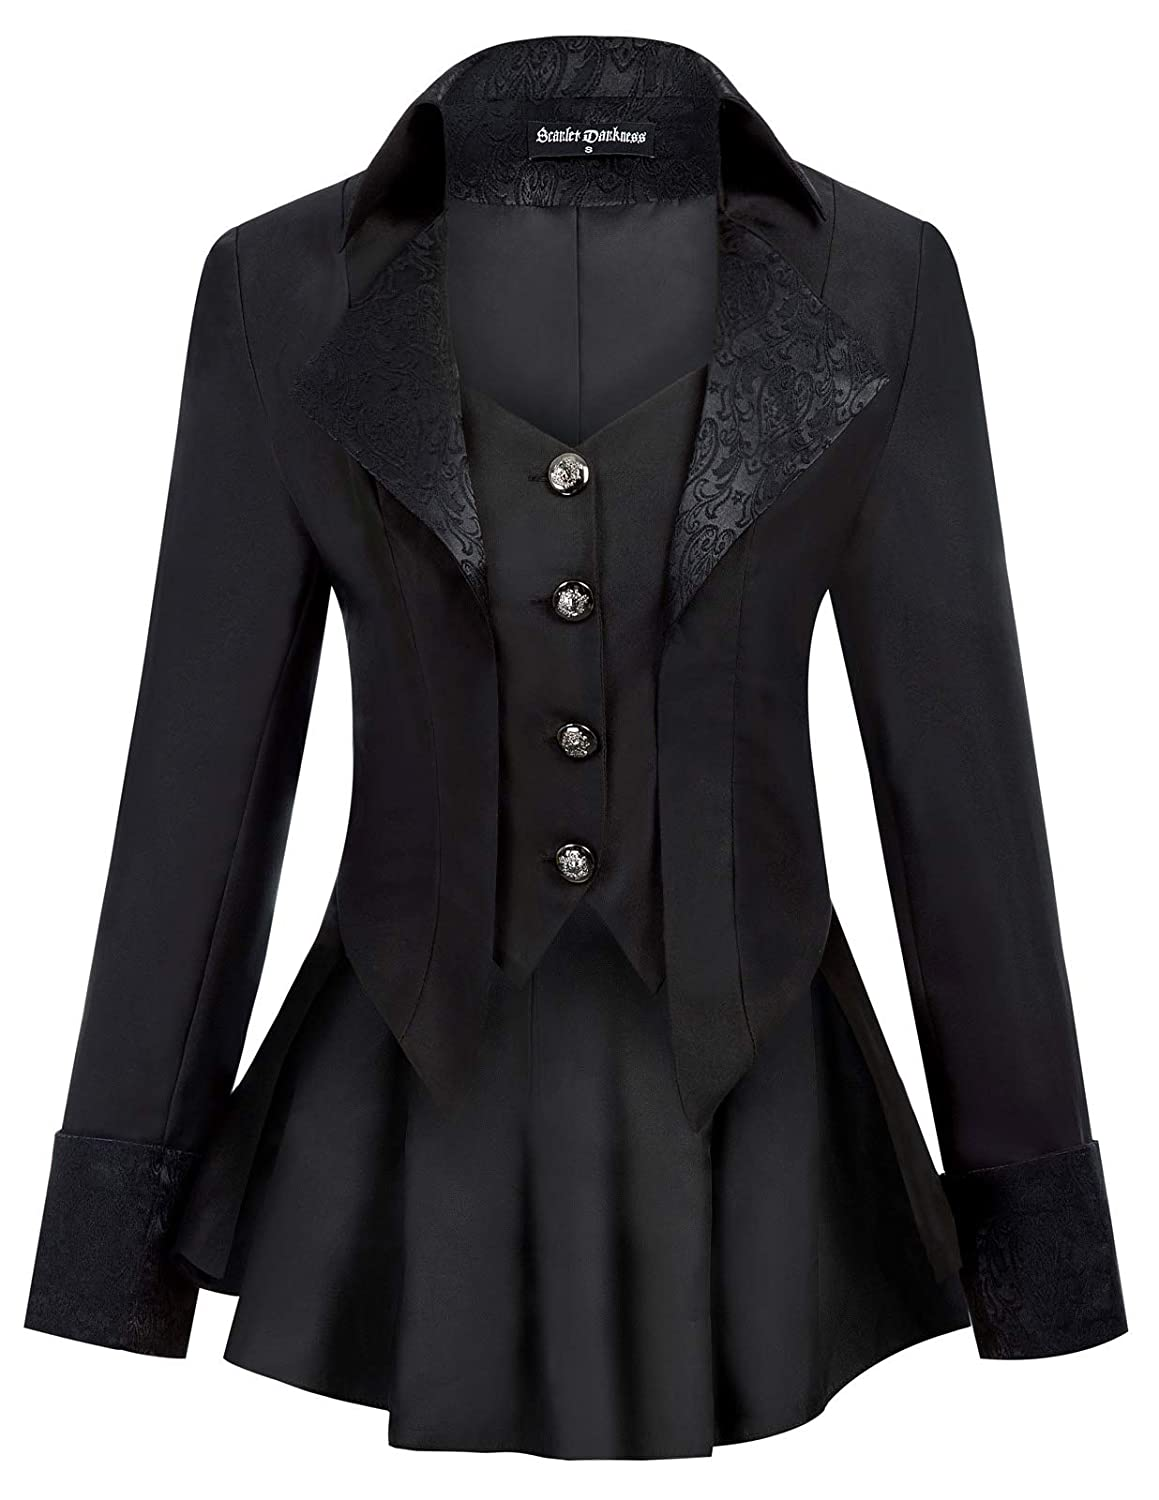 Steampunk Tops | Blouses, Shirts SCARLET DARKNESS Womens Gothic Jacket Vampire Riding Tail Coat Renaissance Costume False 2pcs $41.90 AT vintagedancer.com